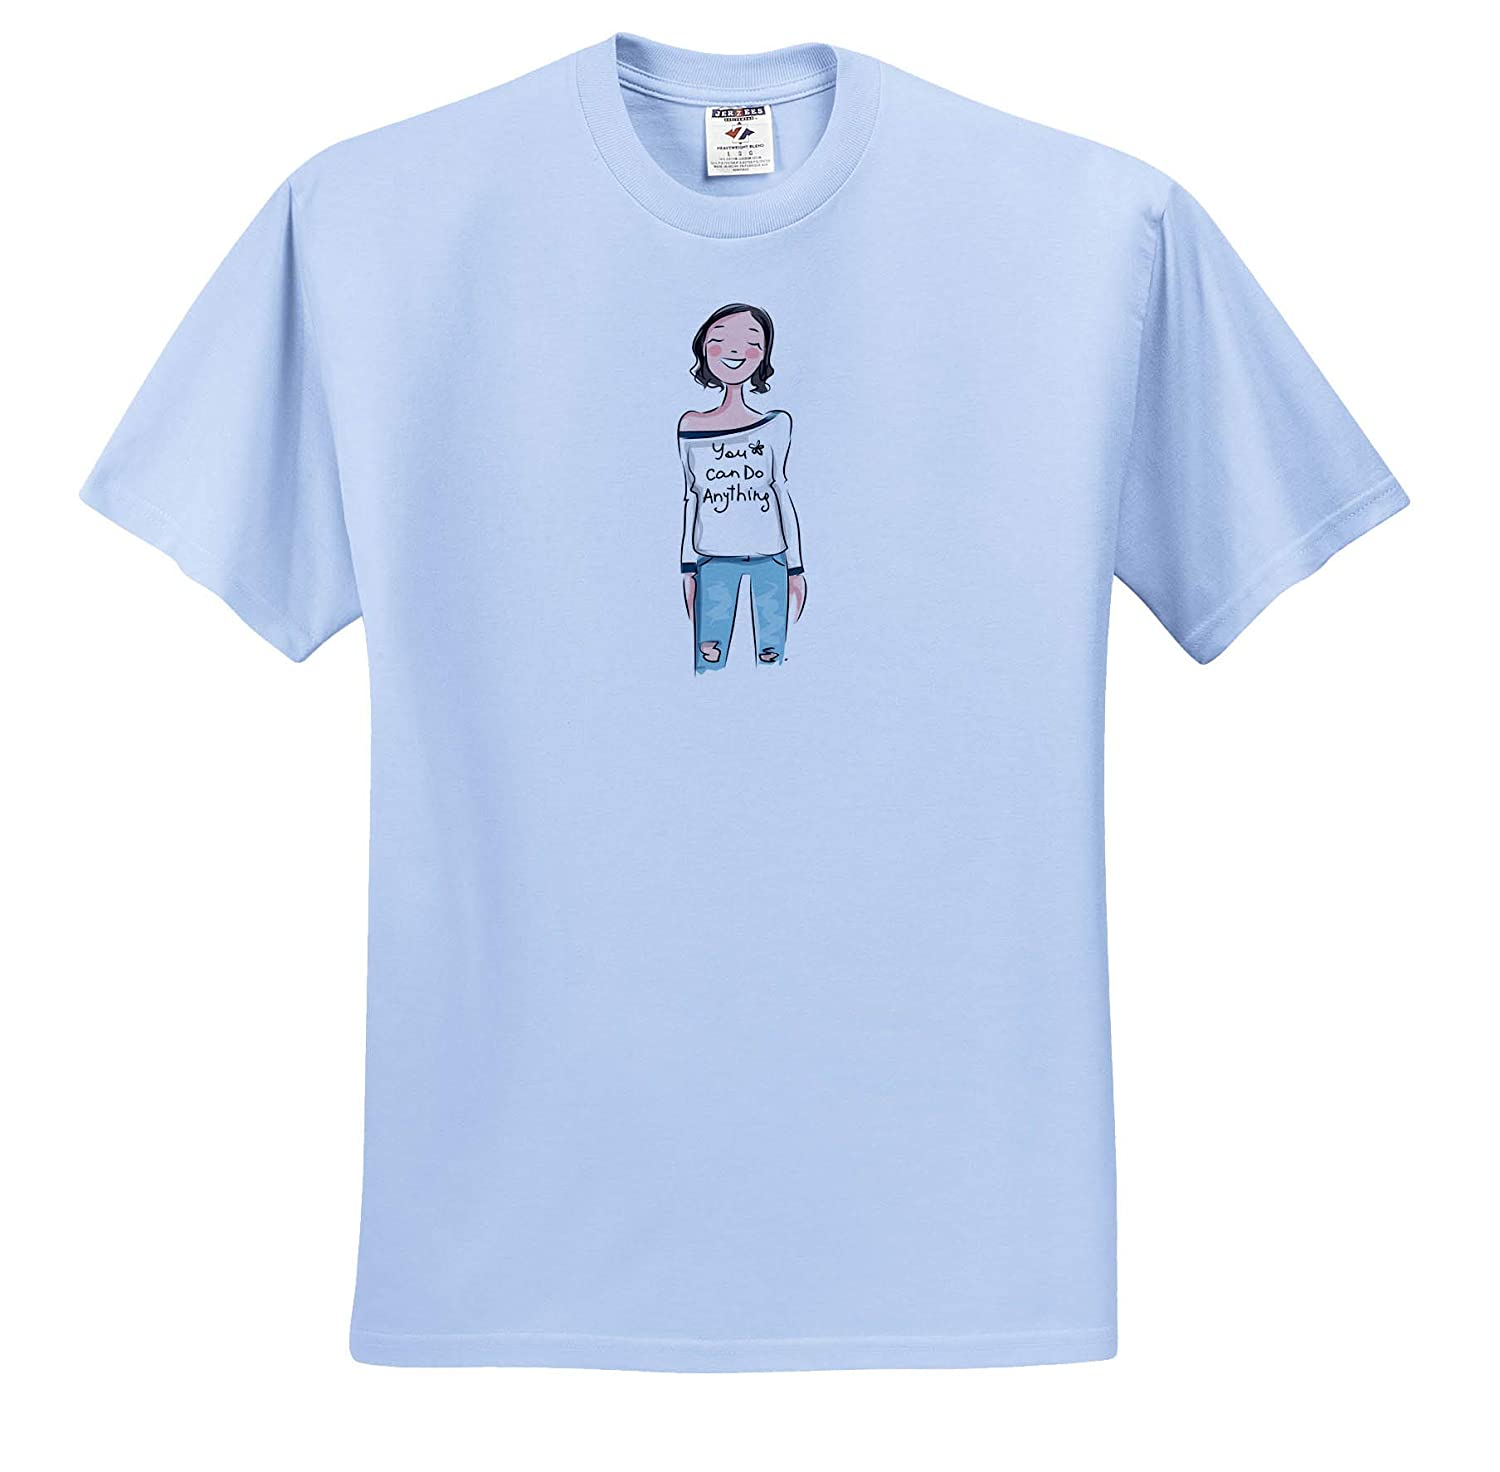 3dRose Lens Art by Florene Image of Girl with T Shirt Say You Can Do Anything Humor ts/_311389 Adult T-Shirt XL